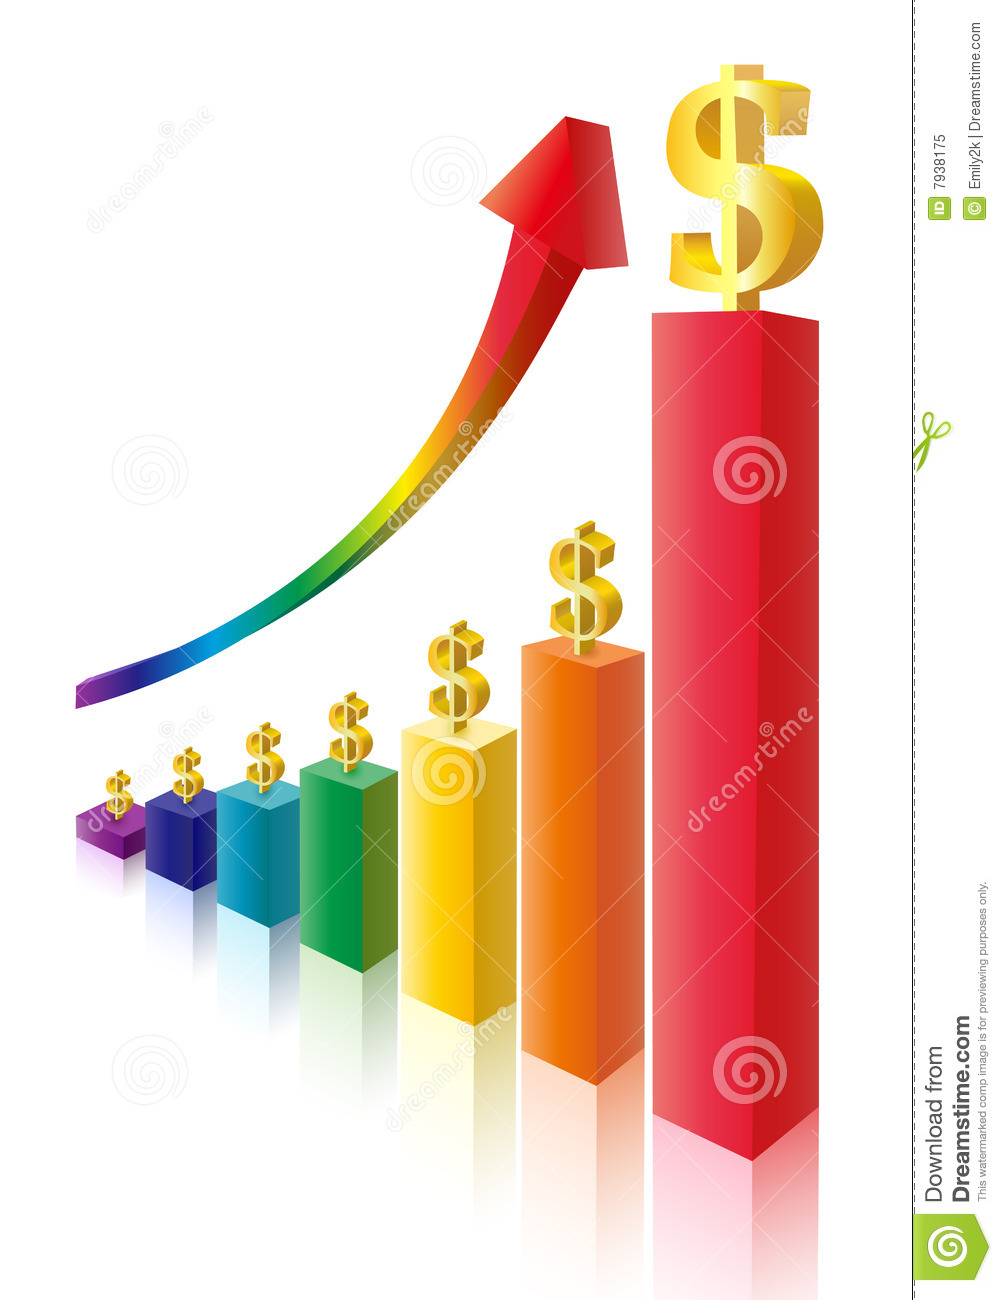 Money sign multicolor bar diagram stock vector illustration of money sign multicolor bar diagram ccuart Image collections